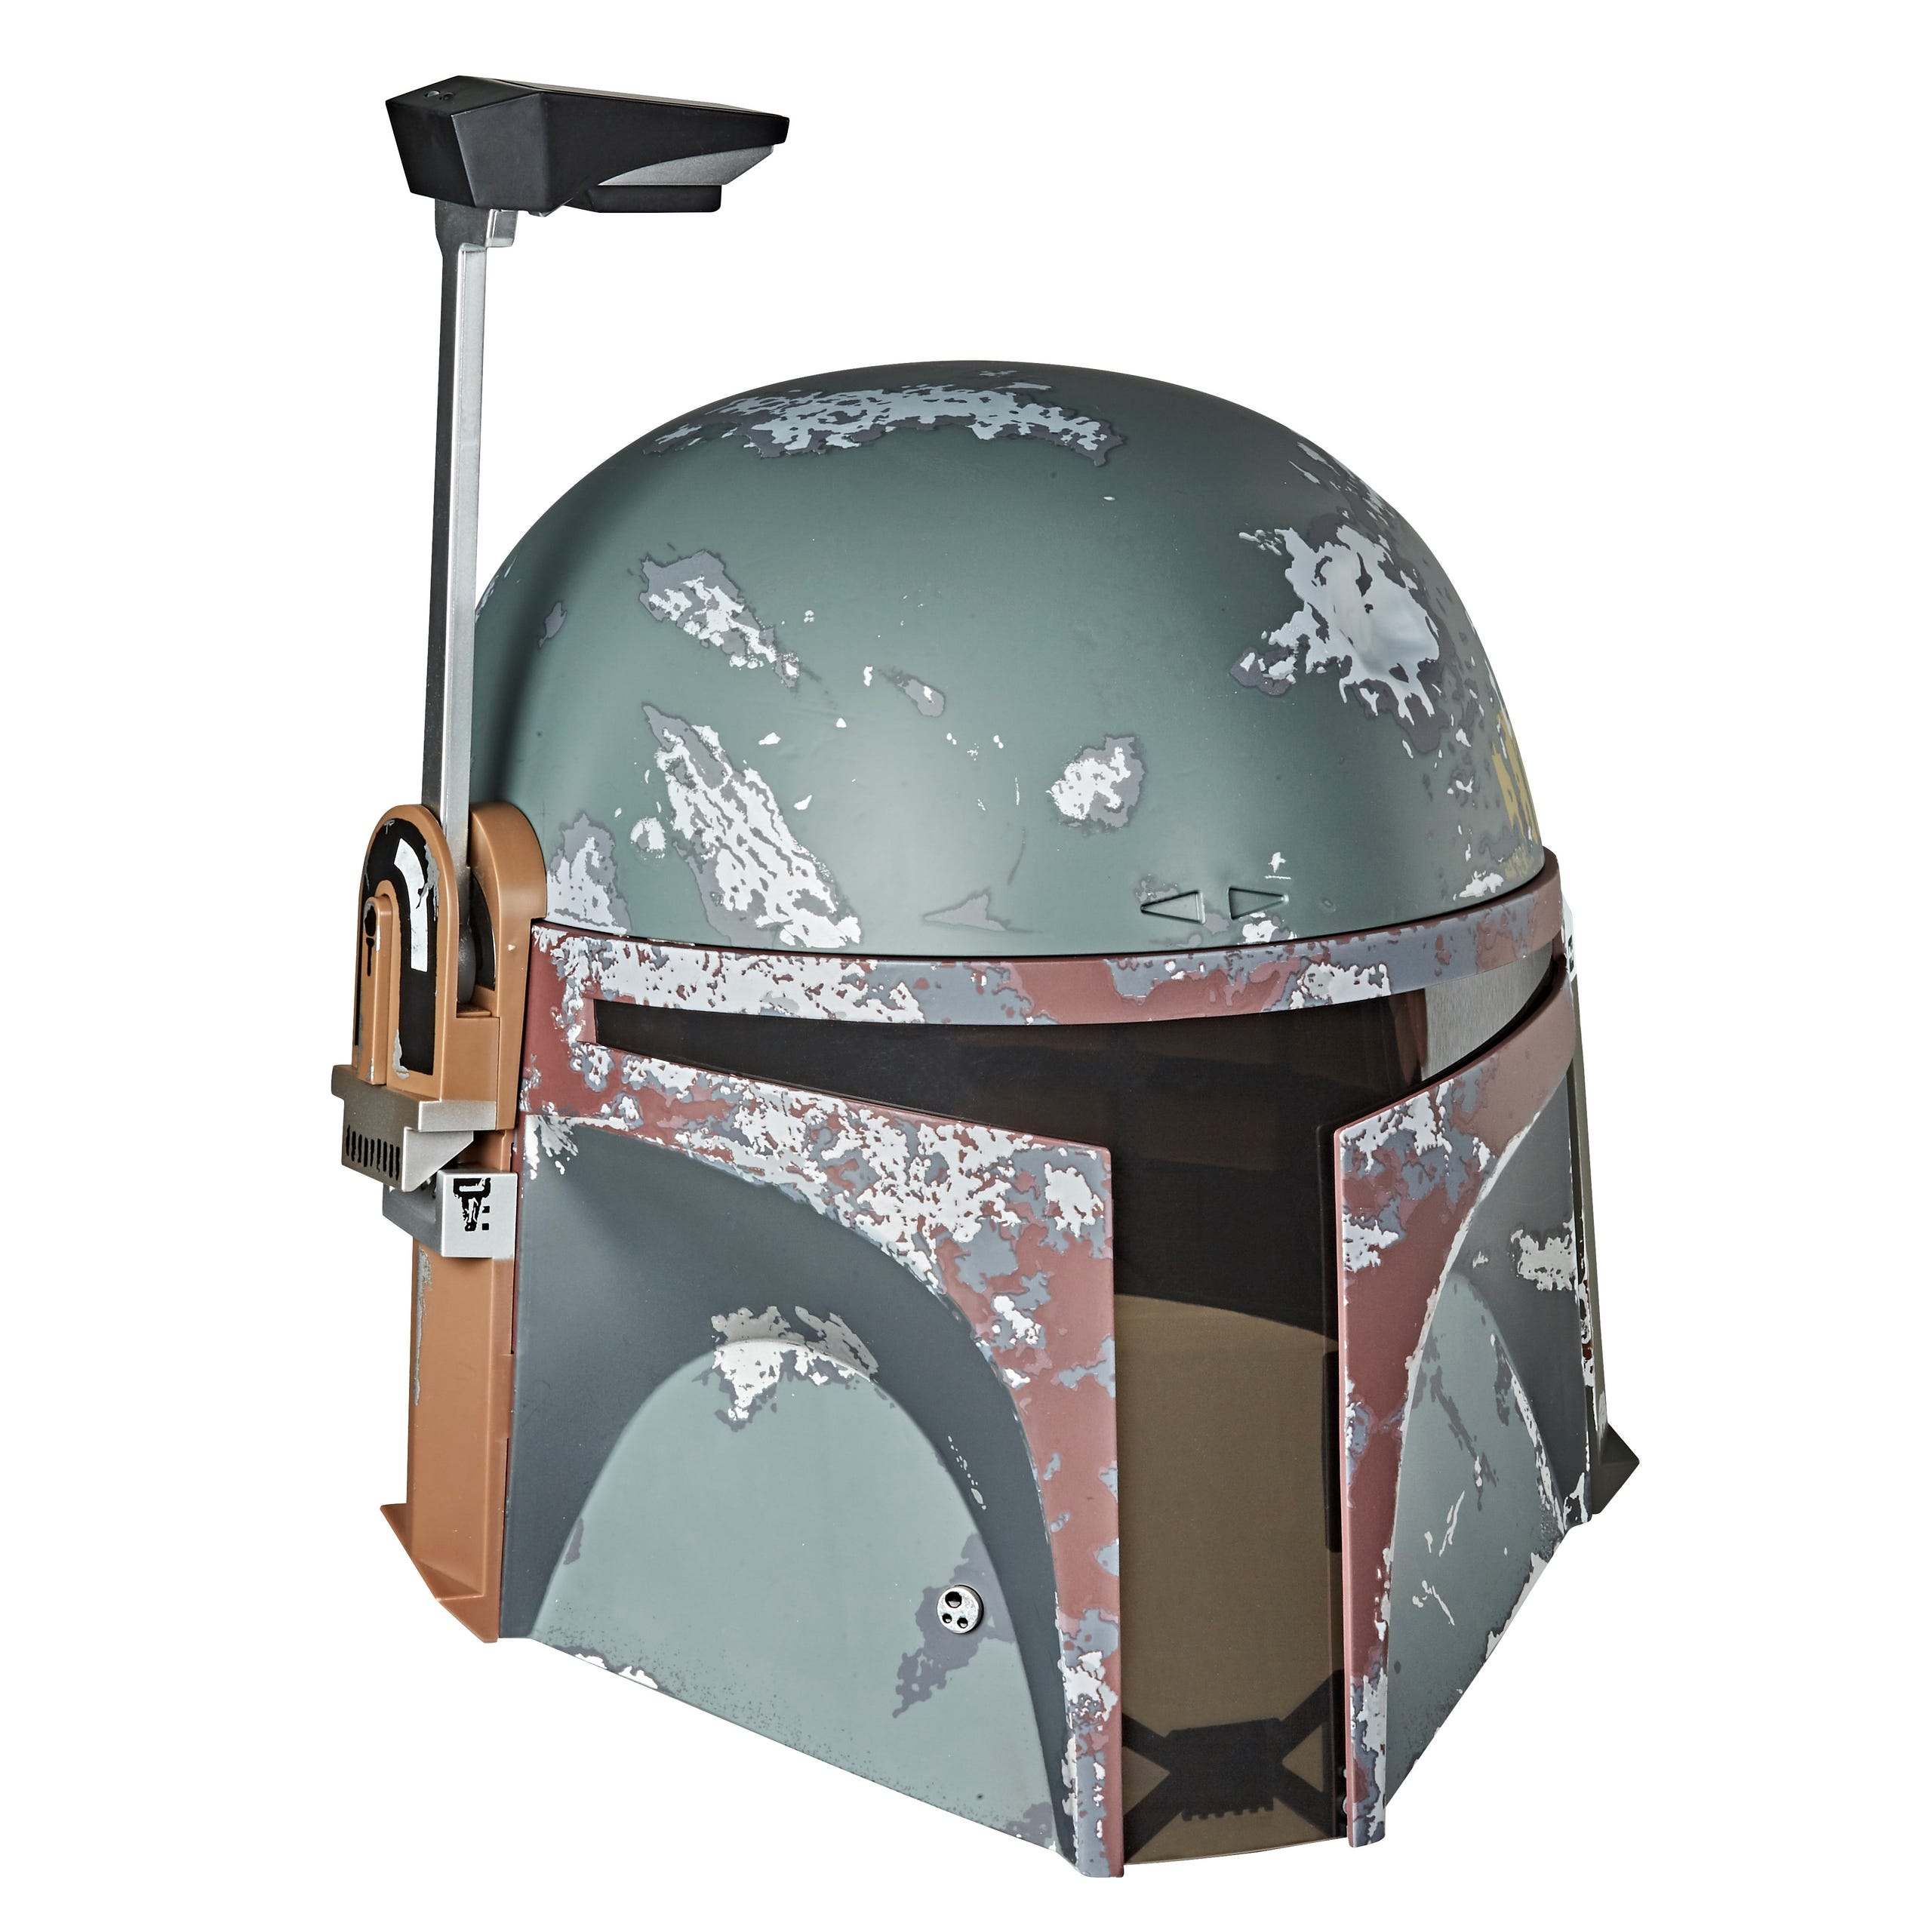 Star Wars The Black Series Boba Fett Helmet E75435L00 E75435L00